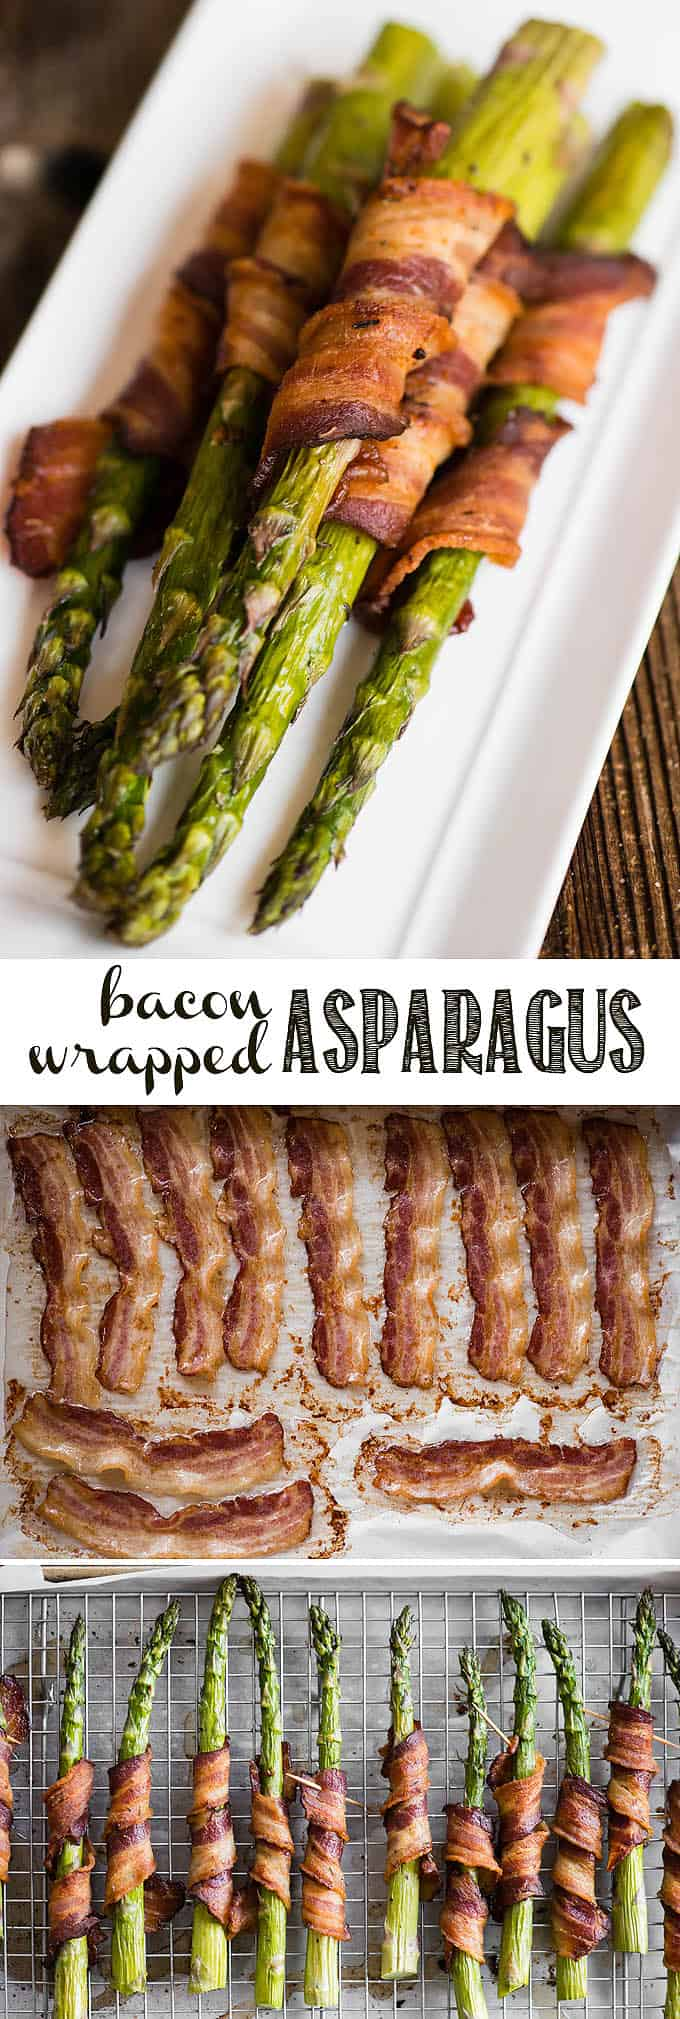 Bacon Wrapped Asparagus can be perfectly oven cooked and served up as a tasty side dish to dinner or breakfast. This easy recipe shows the necessary tips on how to get tender asparagus wrapped in crispy bacon. Only a few ingredients are needed to make asparagus wrapped in bacon, and perfect results will follow! #bacon #baconwrapped #baconwrappedasparagus #asparagus #veggie #springveggie #ovenbaked